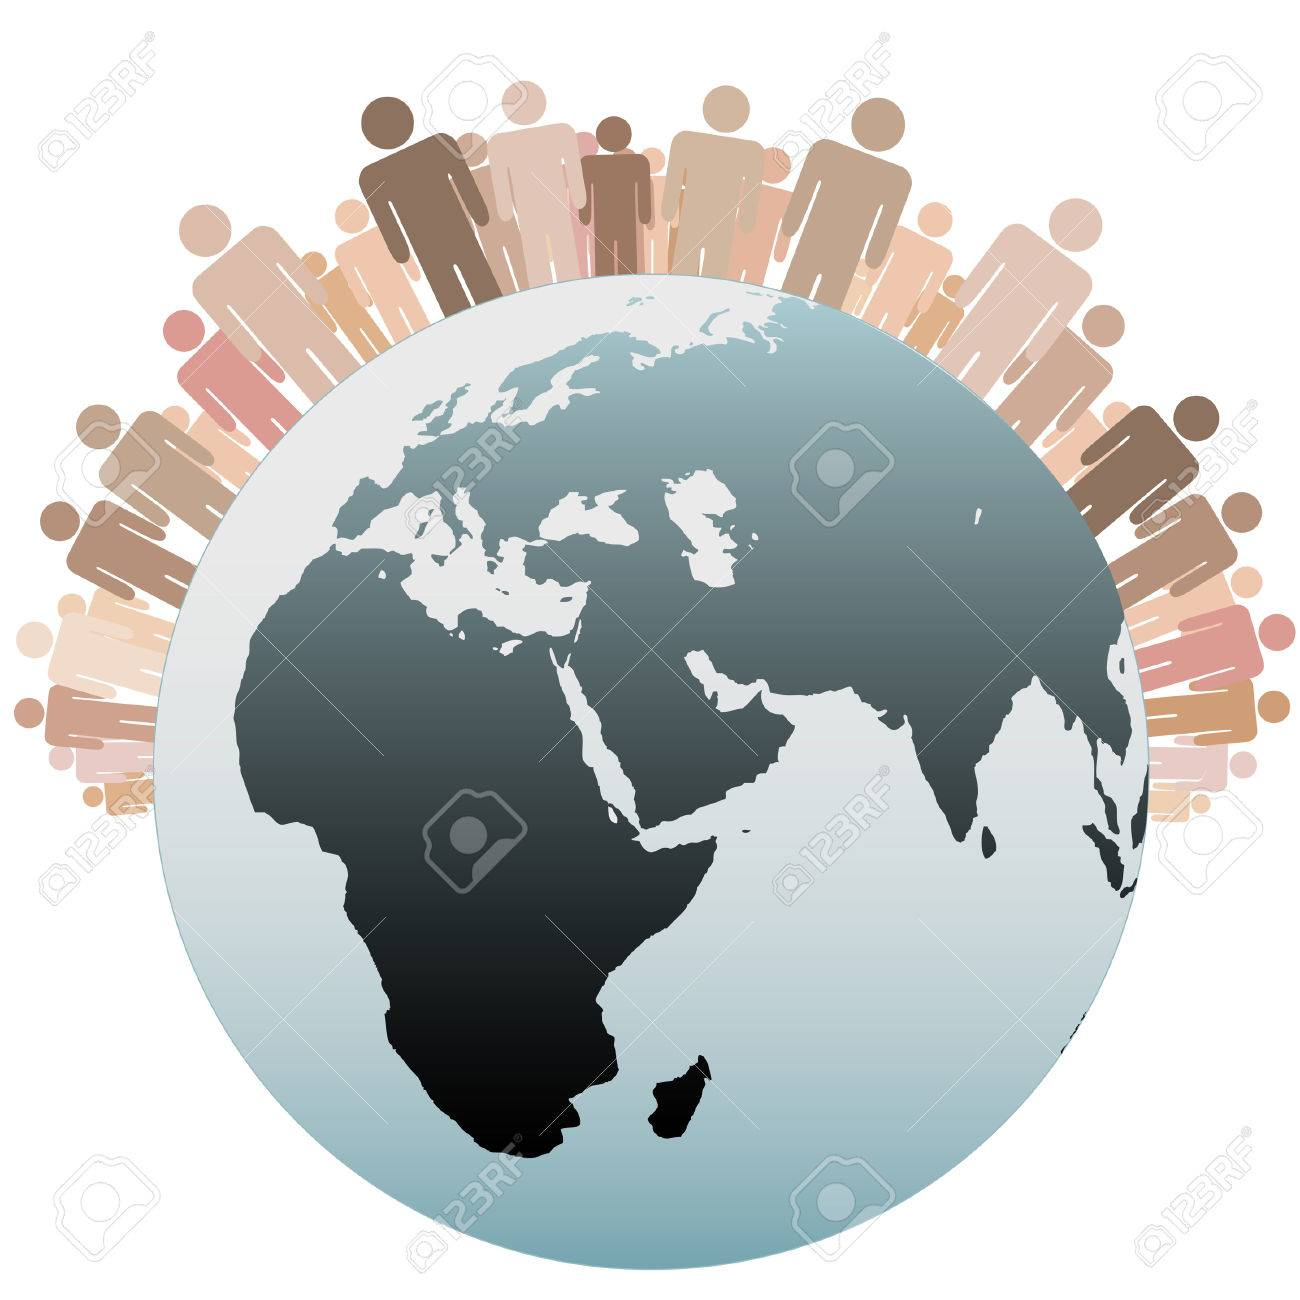 Many diverse people stand on the Western Hemisphere as symbols of the Population of Earth. Stock Vector - 7616461